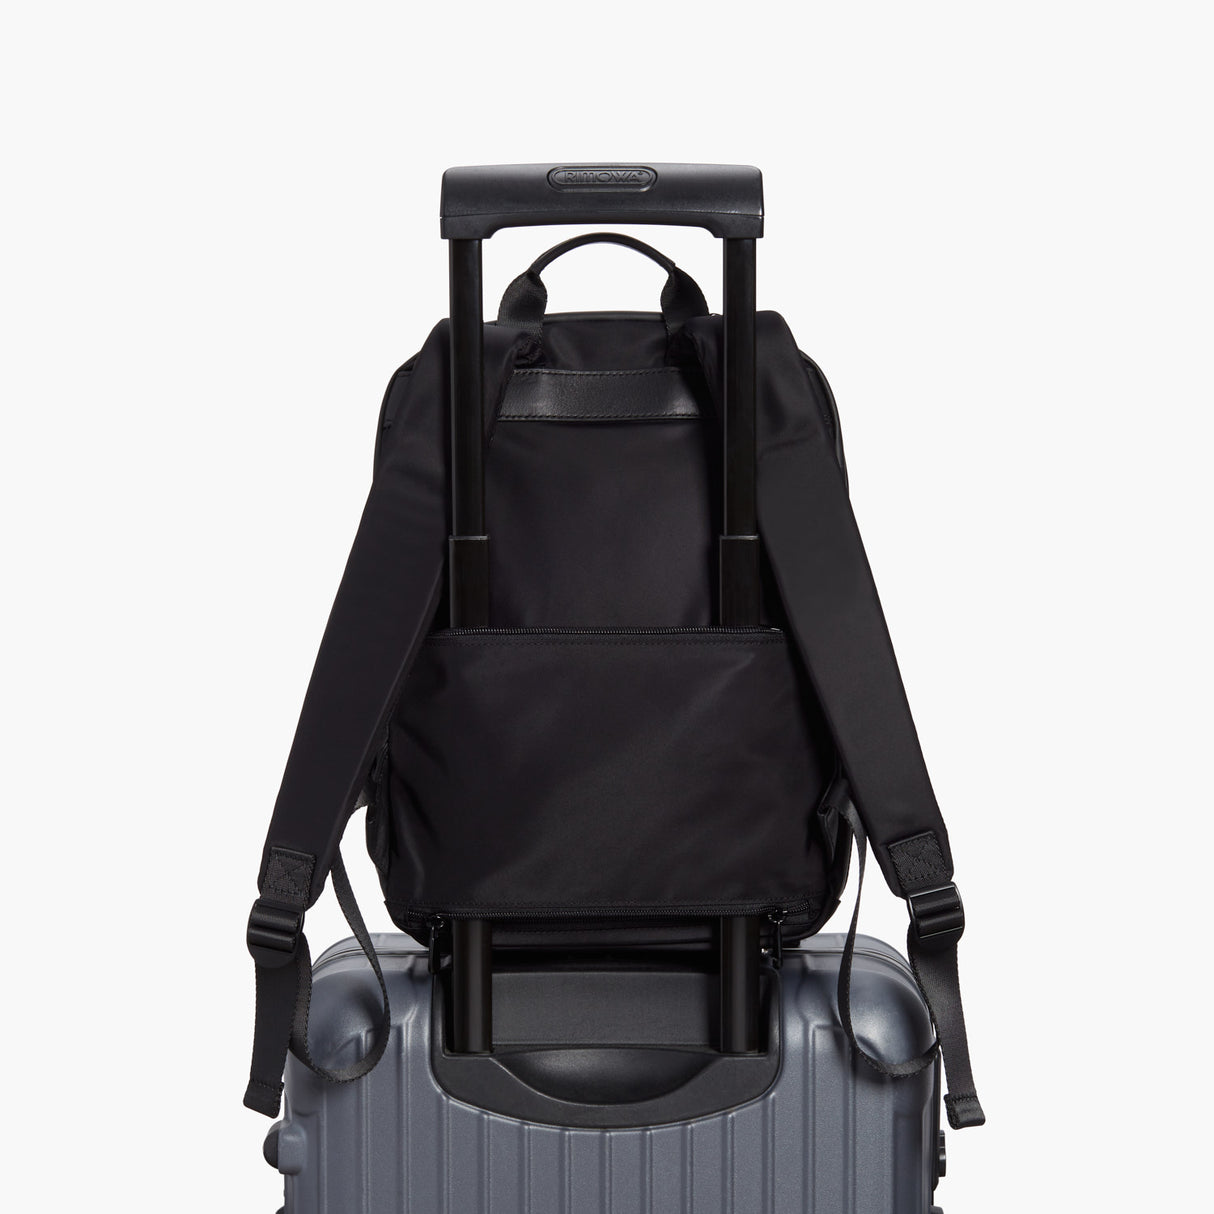 Luggage - Beacon - Nylon - Black / Gunmetal / Azure - Backpack - Lo & Sons